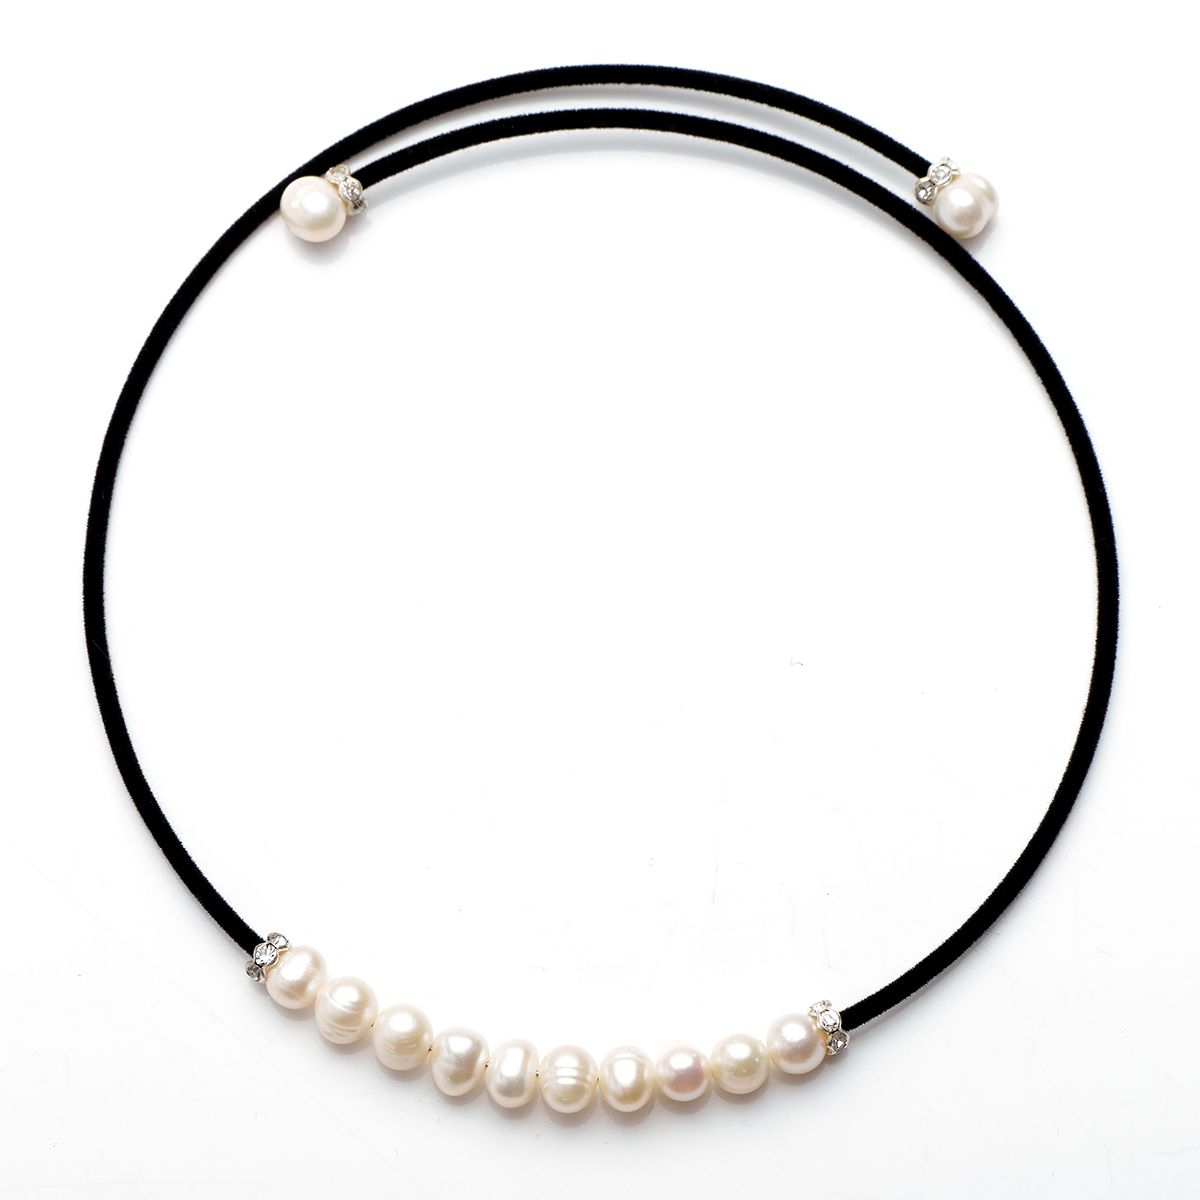 Black Cotton Cord White Freshwater Pearls Choker Necklace For Women's Fashion Jewelry For Most Recently Released Offset Freshwater Cultured Pearl Circle Necklaces (View 13 of 25)